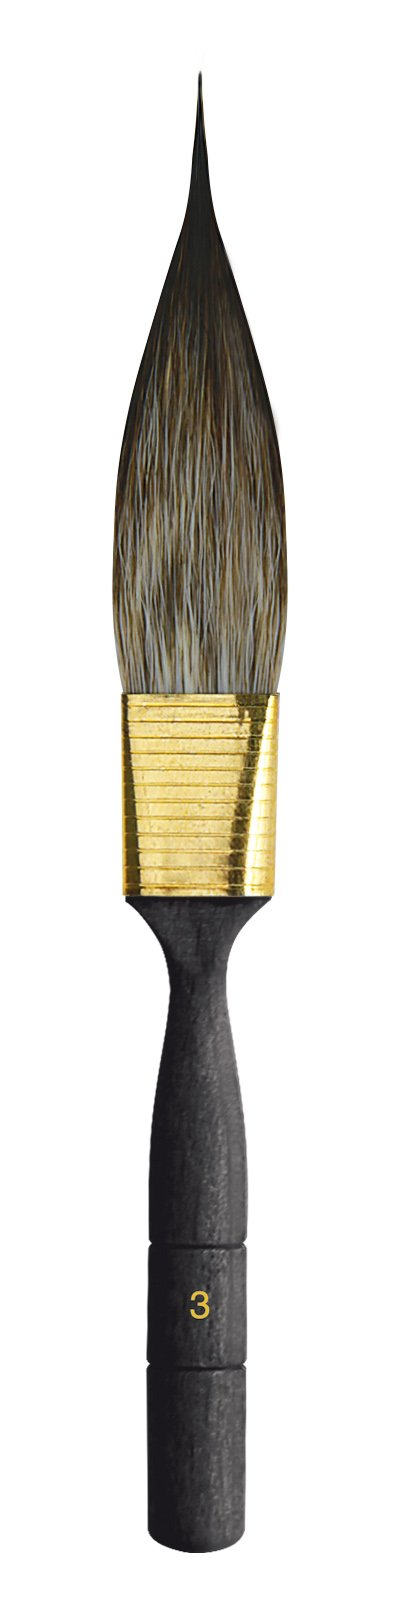 da Vinci Graphic Design Series 704 Pinstriping Brush, Dagger-Shaped Synthetic Imitation Squirrel with Black Handle, Size 3 by da Vinci Brushes